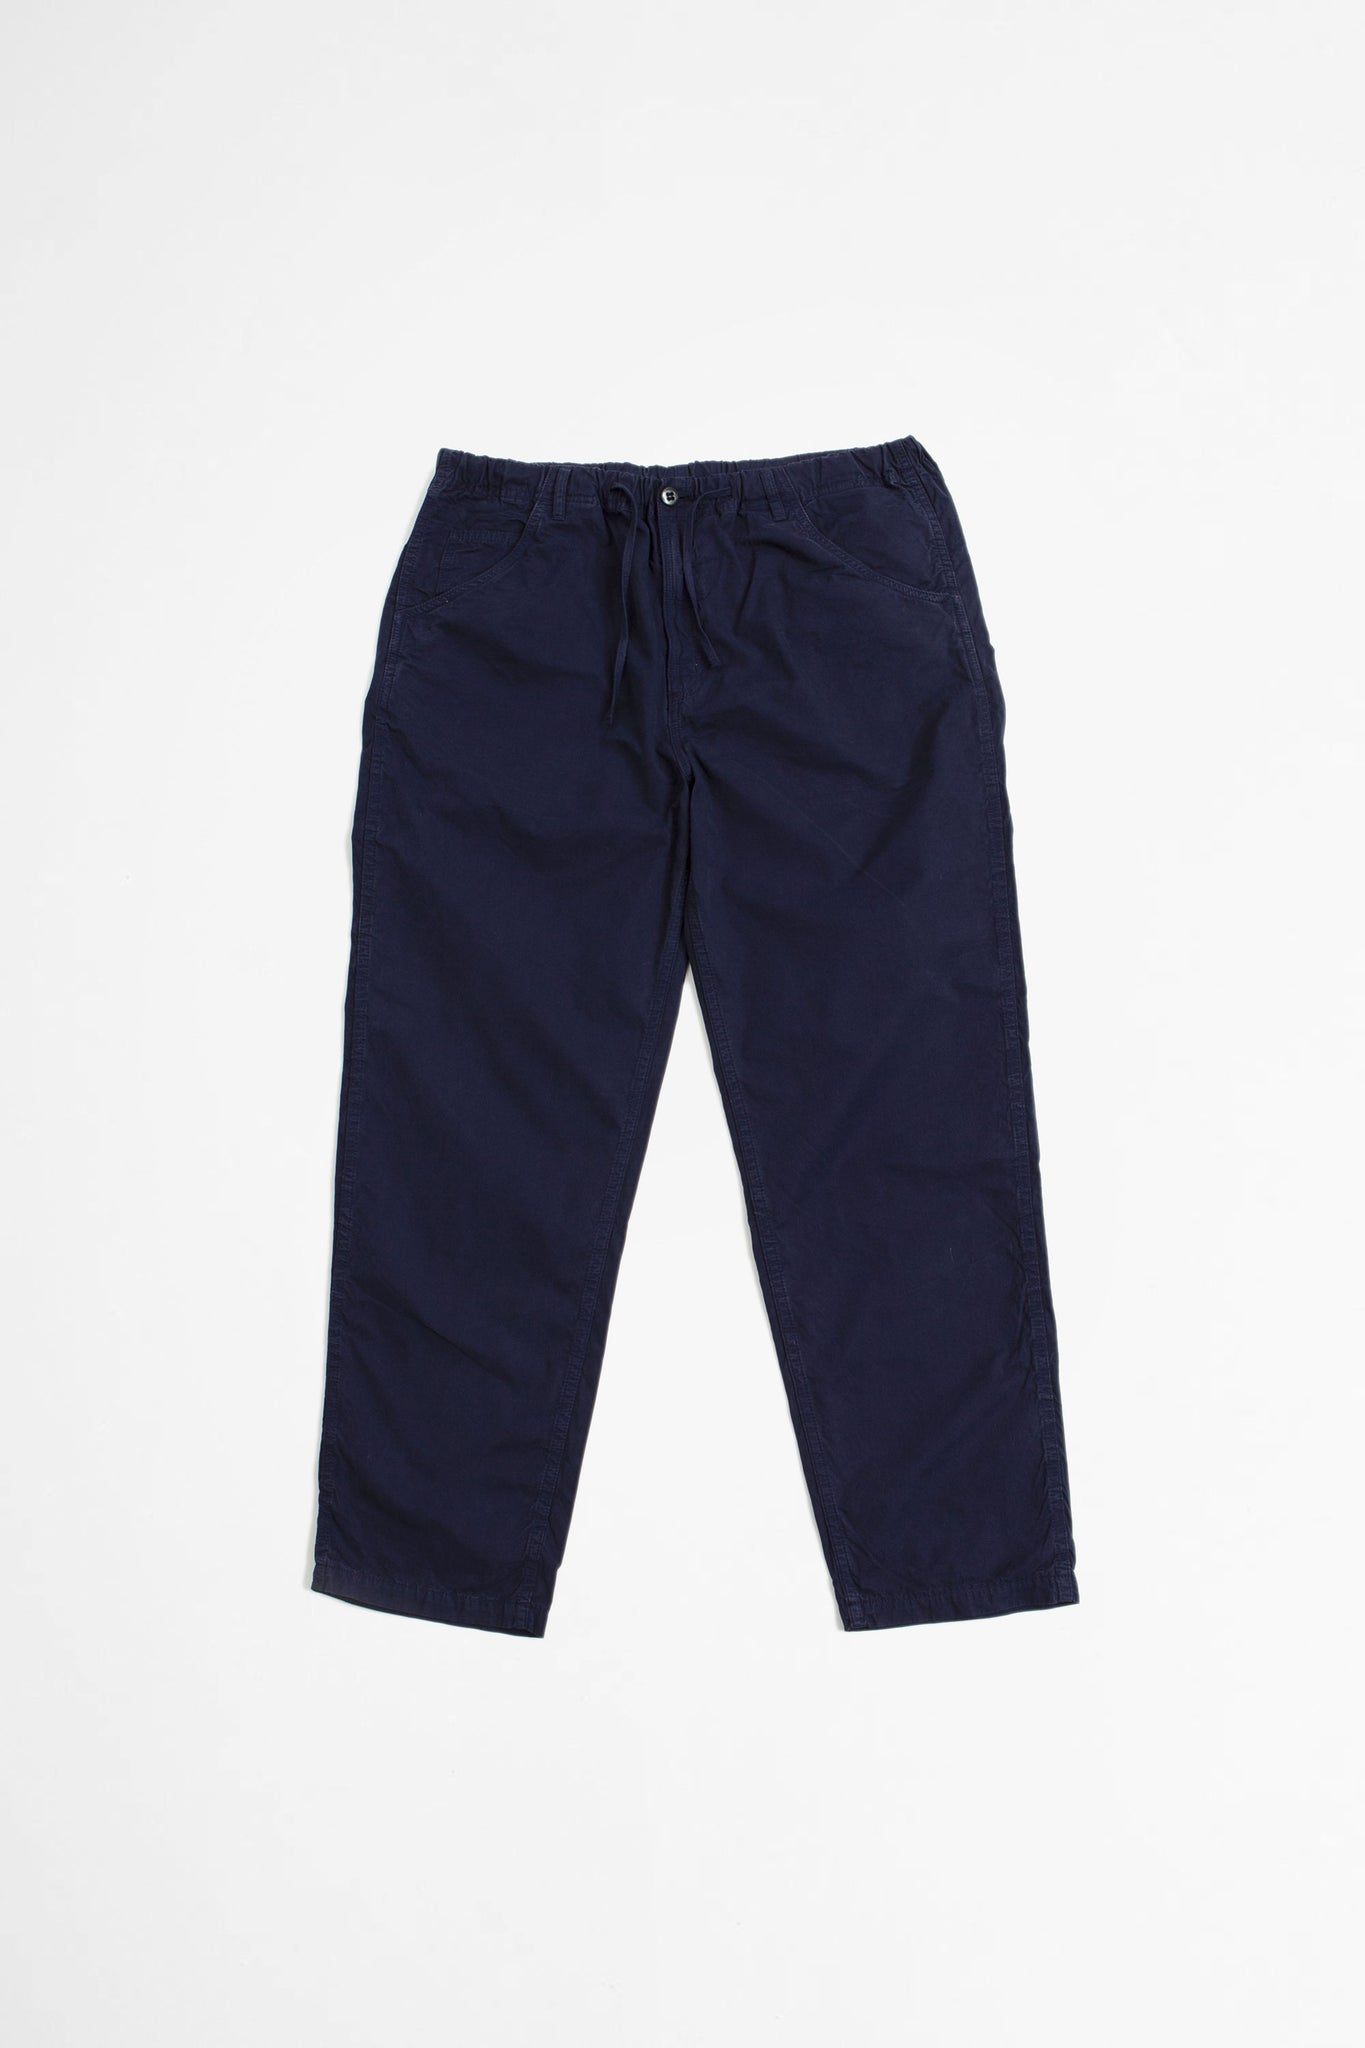 Recreation pant navy poplin